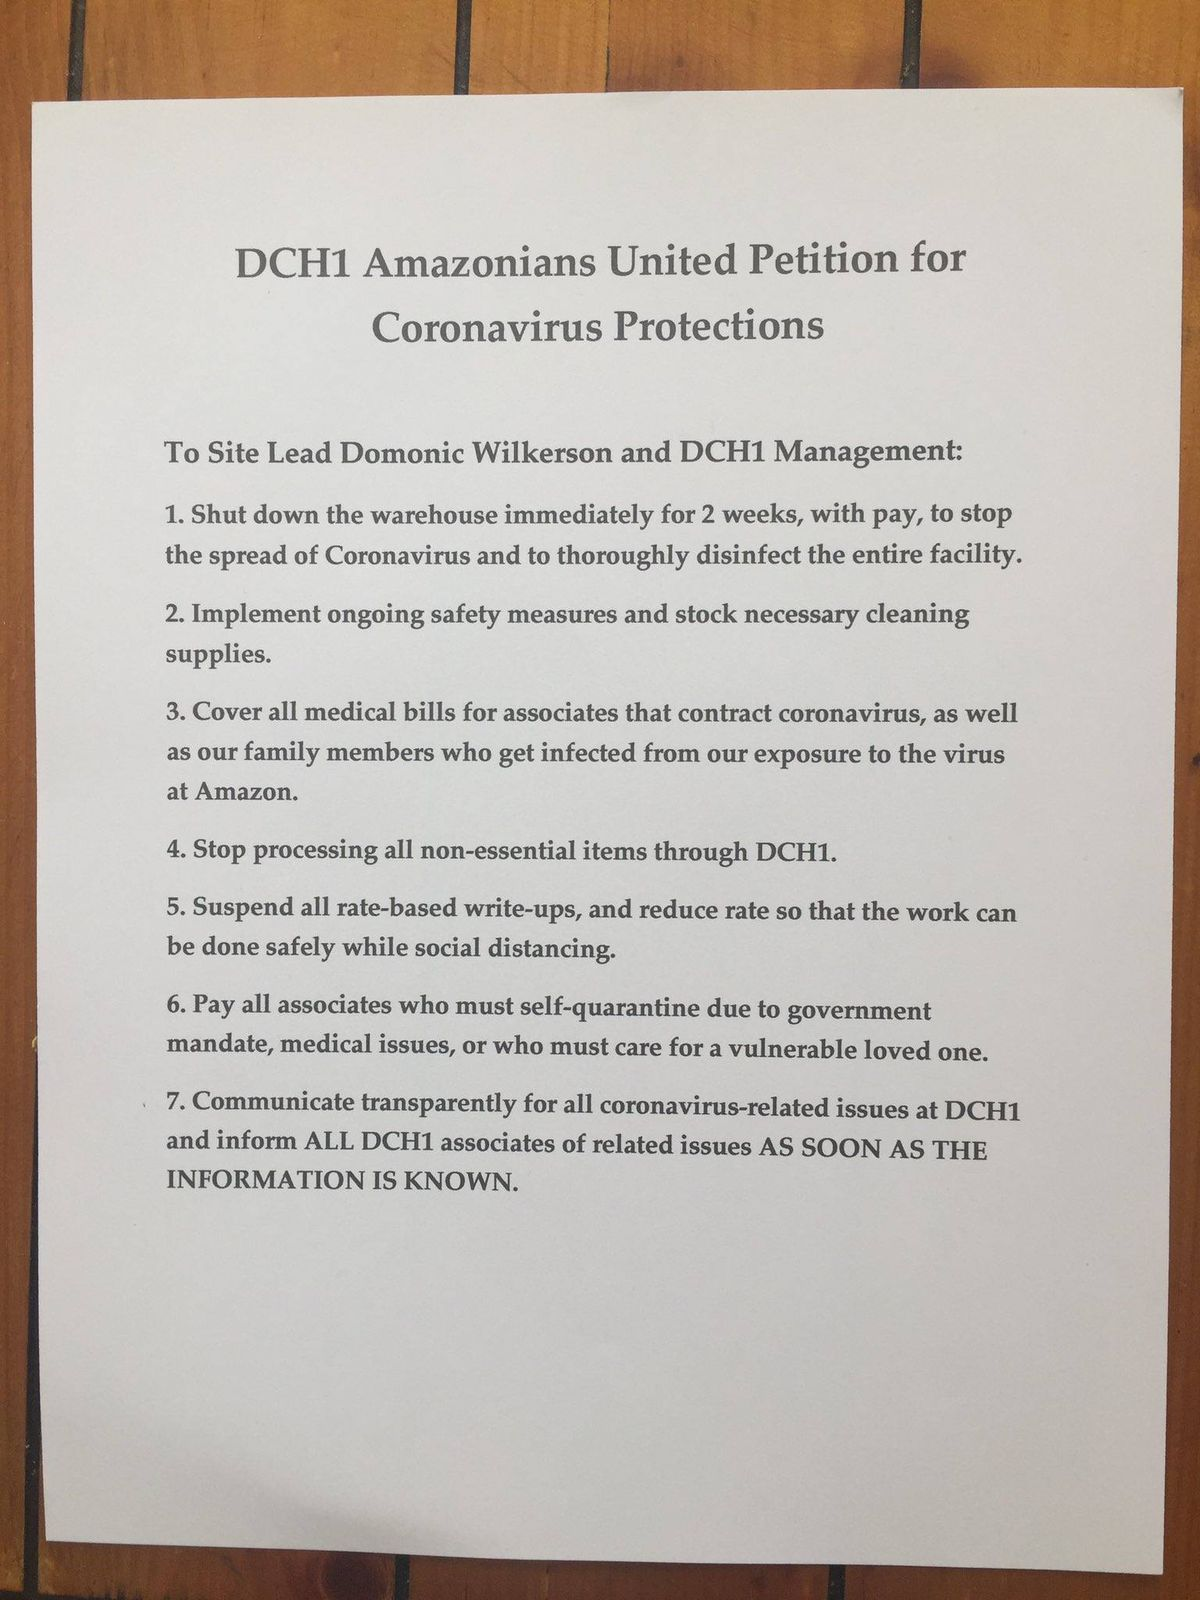 Seven-point petition from Amazon warehouse employees in Little Village to management.